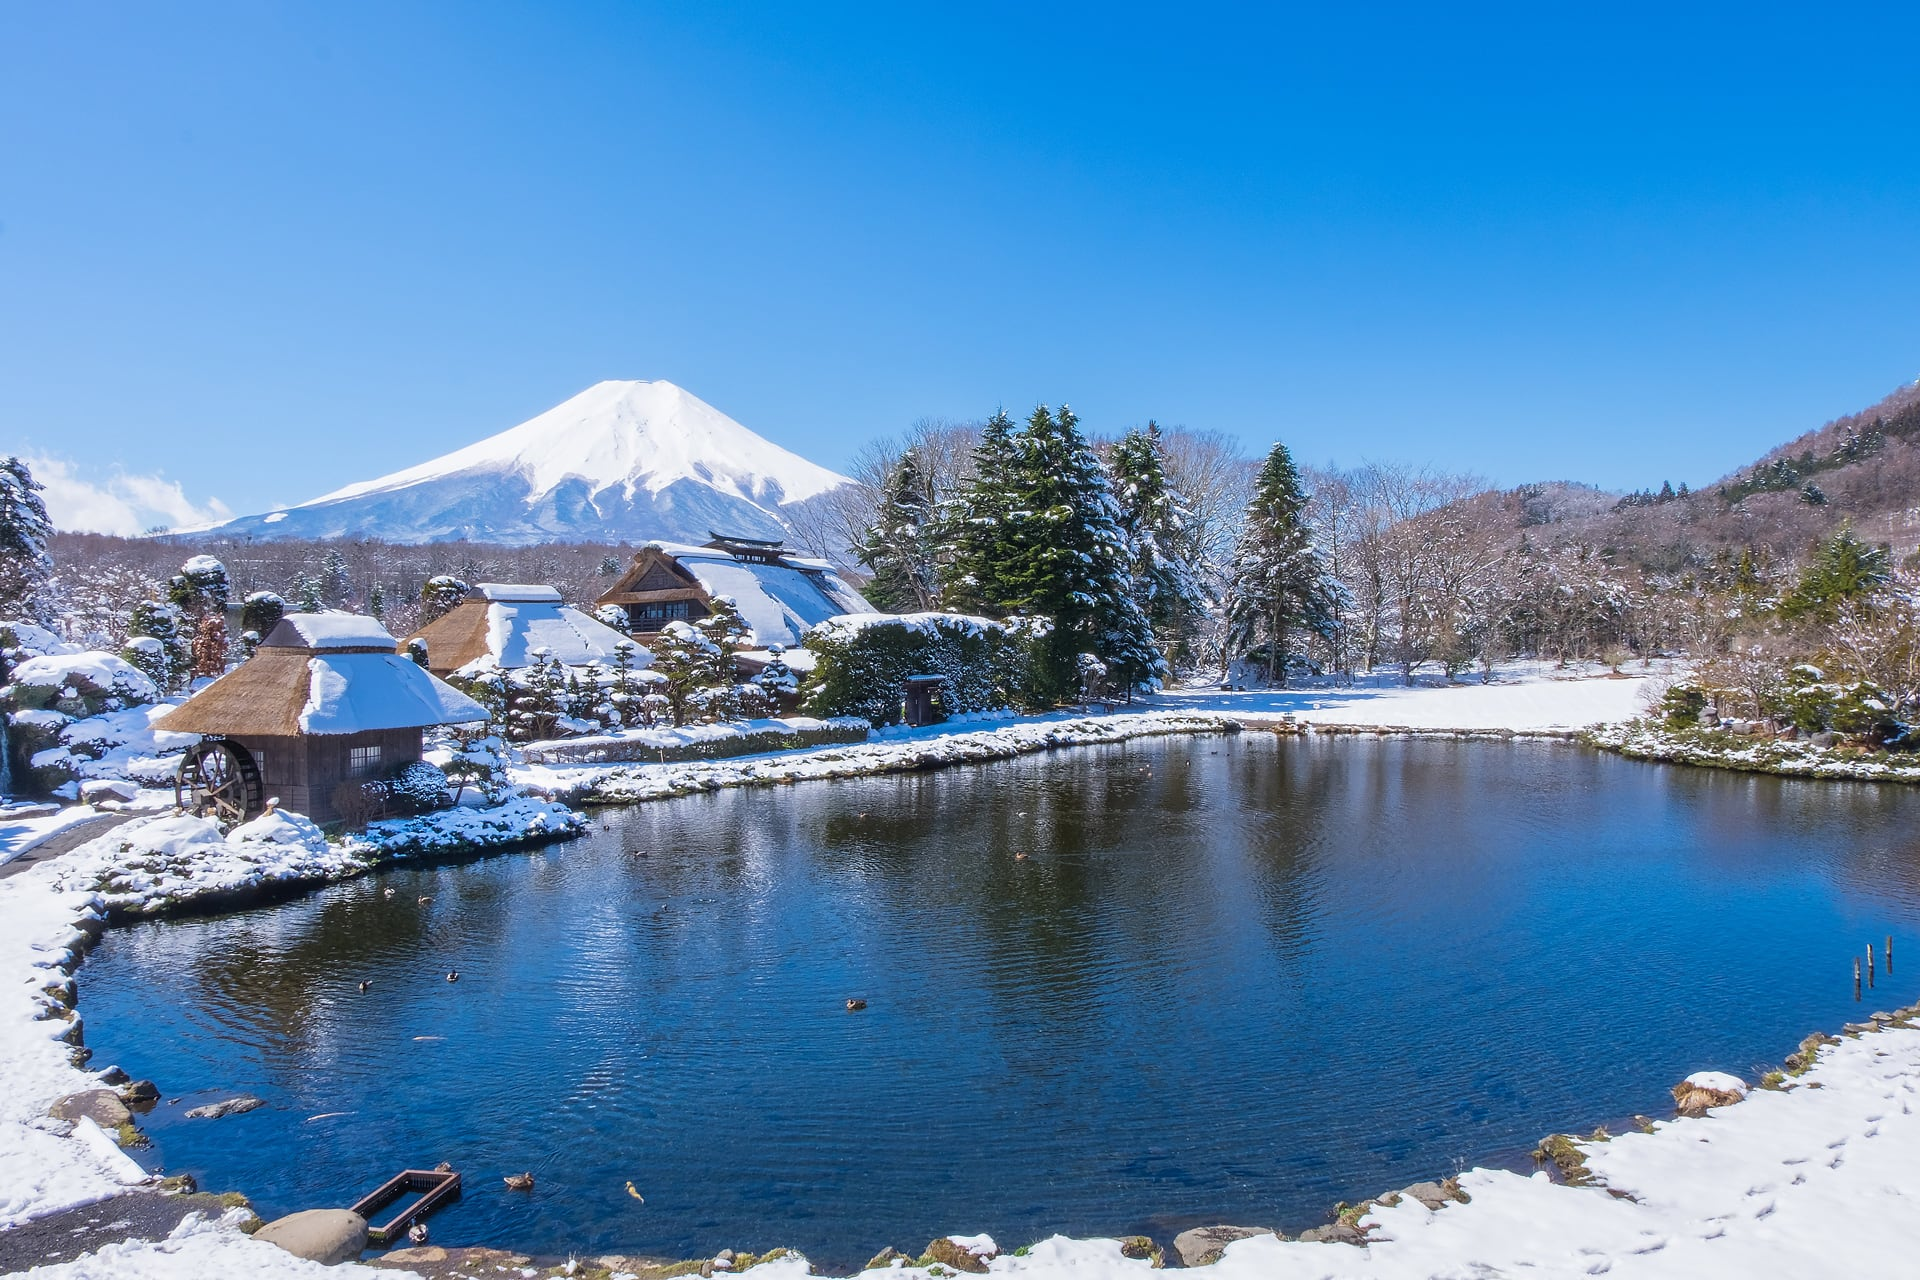 Oshino Hakkai Village Mt. Fuji Japan